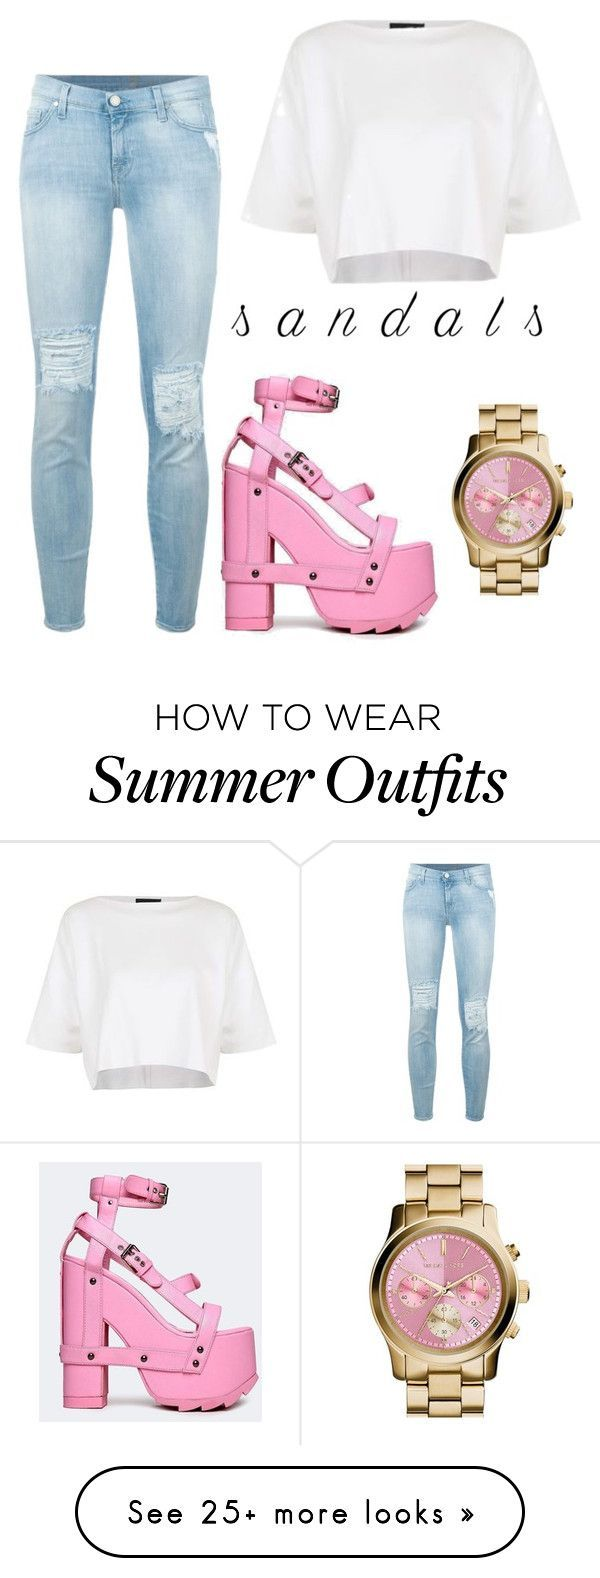 e59ff8797c0 Summer Outfits   Girly sandal outfit! by ali-stokes on Polyvore featuring 7  For All Mankind To